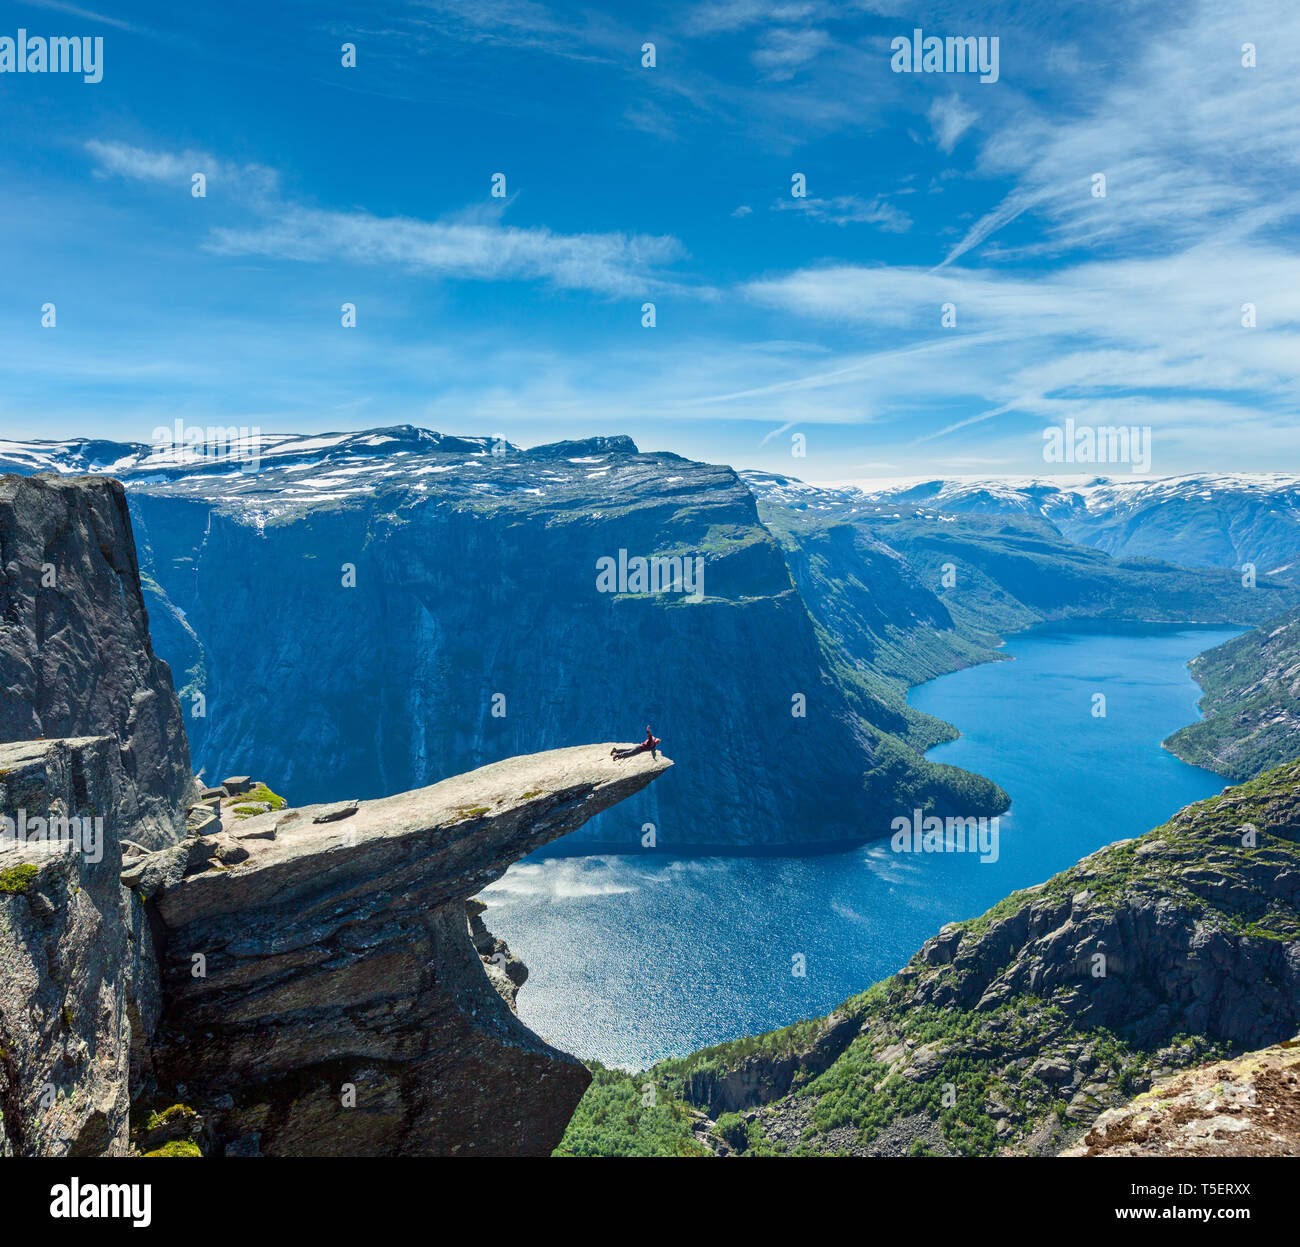 The summer view of Trolltunga (famous The Troll tongue Norvegian destination), Ringedalsvatnet lake in Odda, Roldal, Norway. And admire tourist on Tro - Stock Image